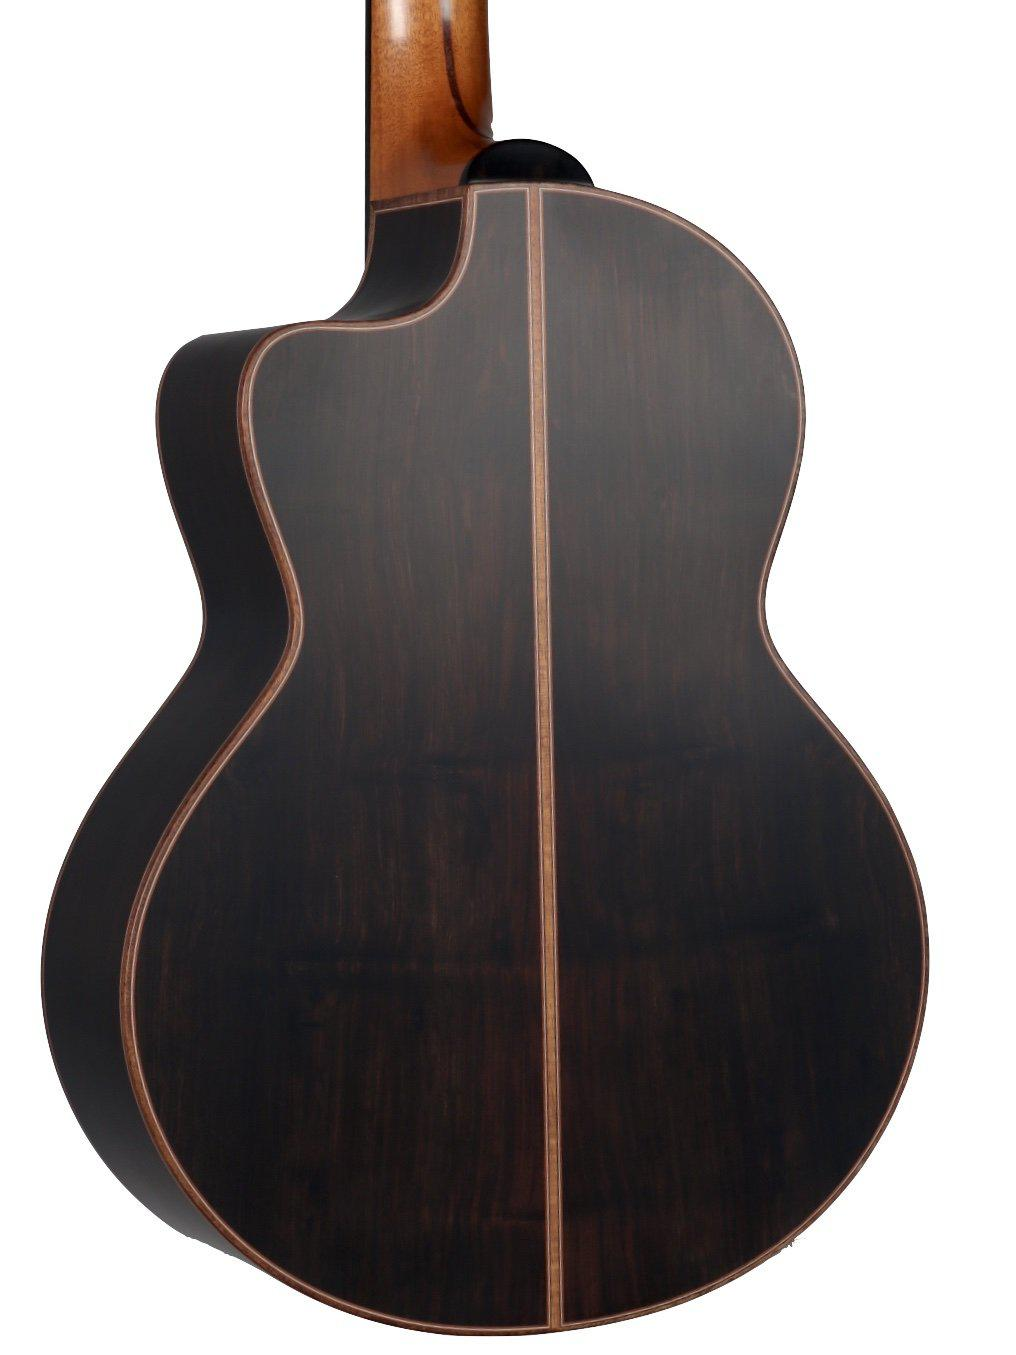 Lowden S50J Custom Jazz African Blackwood #2 Inlay Package #24012 - Lowden Guitars - Heartbreaker Guitars